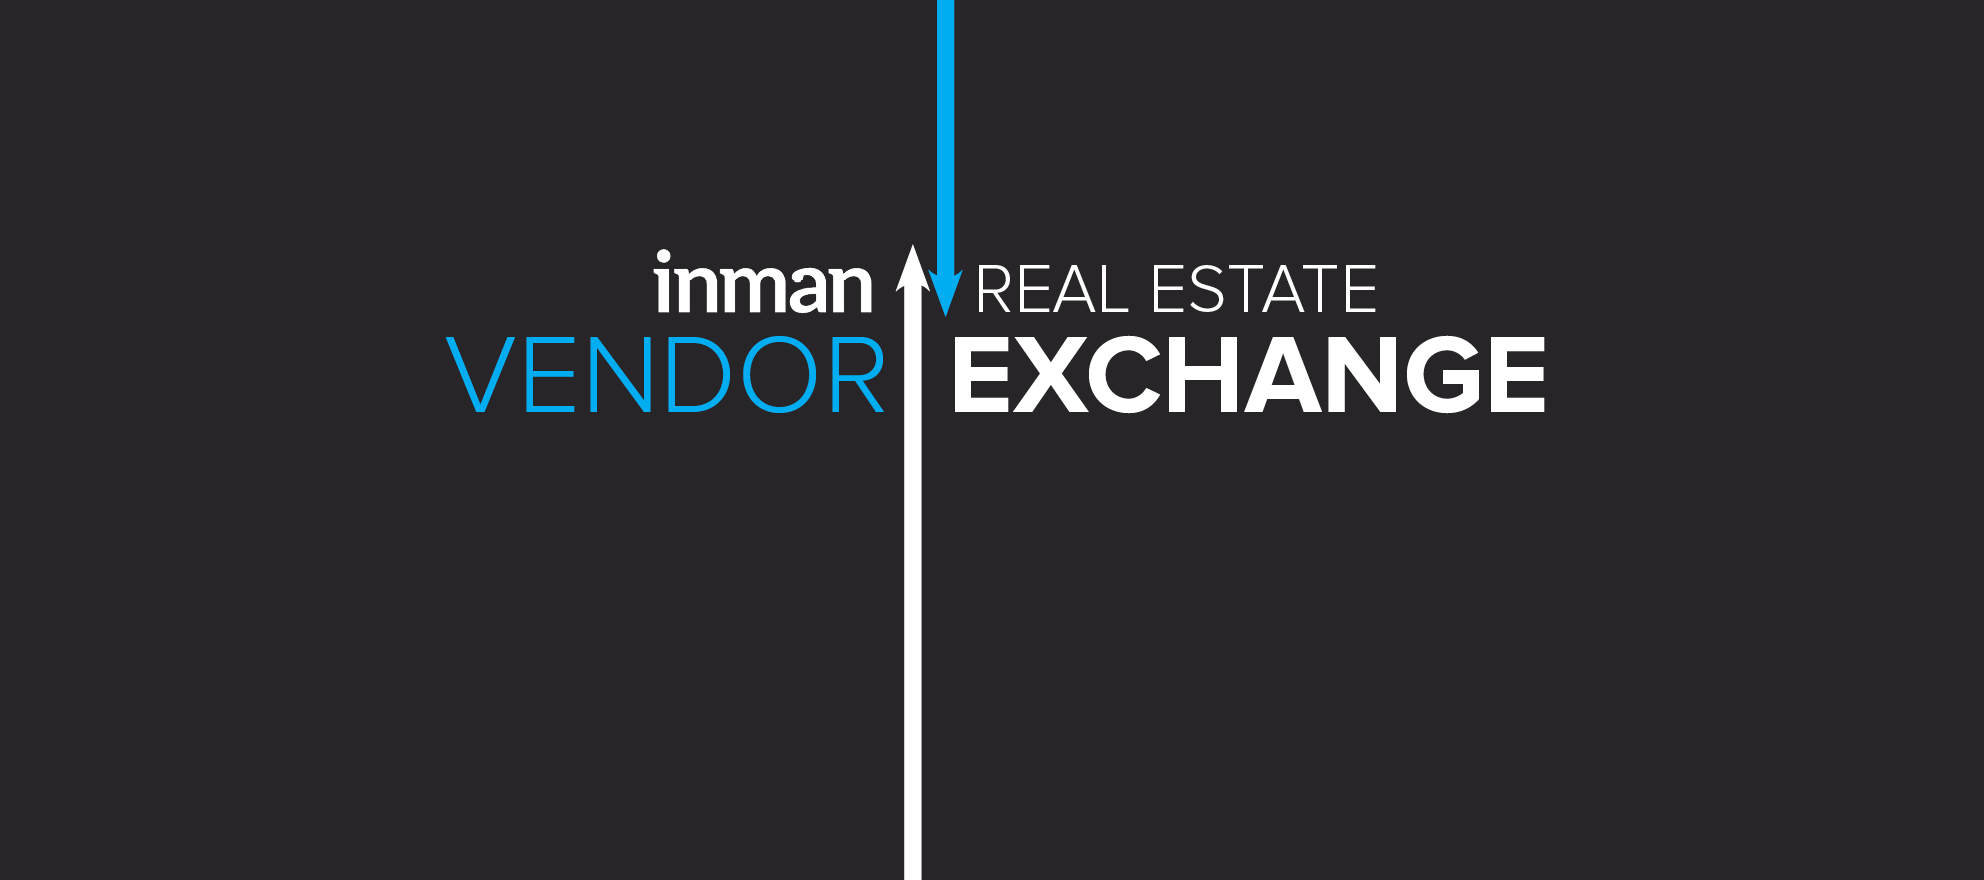 Inman Real Estate Vendor Exchange